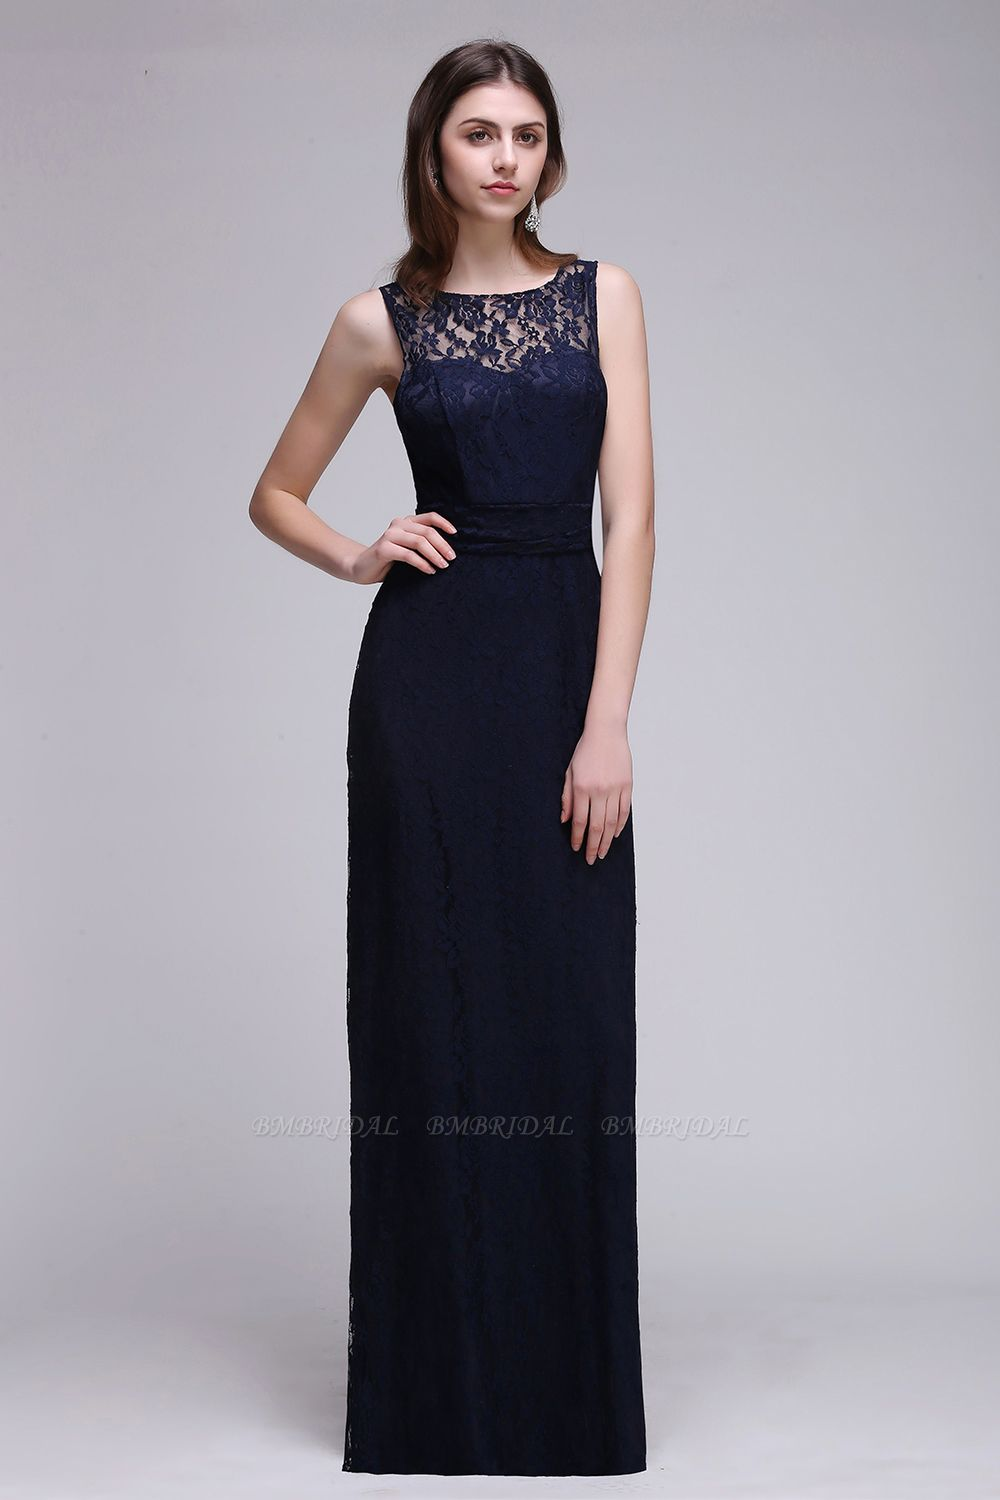 BMbridal Chic Sleeveless Scoop Lace Bridesmaid Dress with Keyhole Back